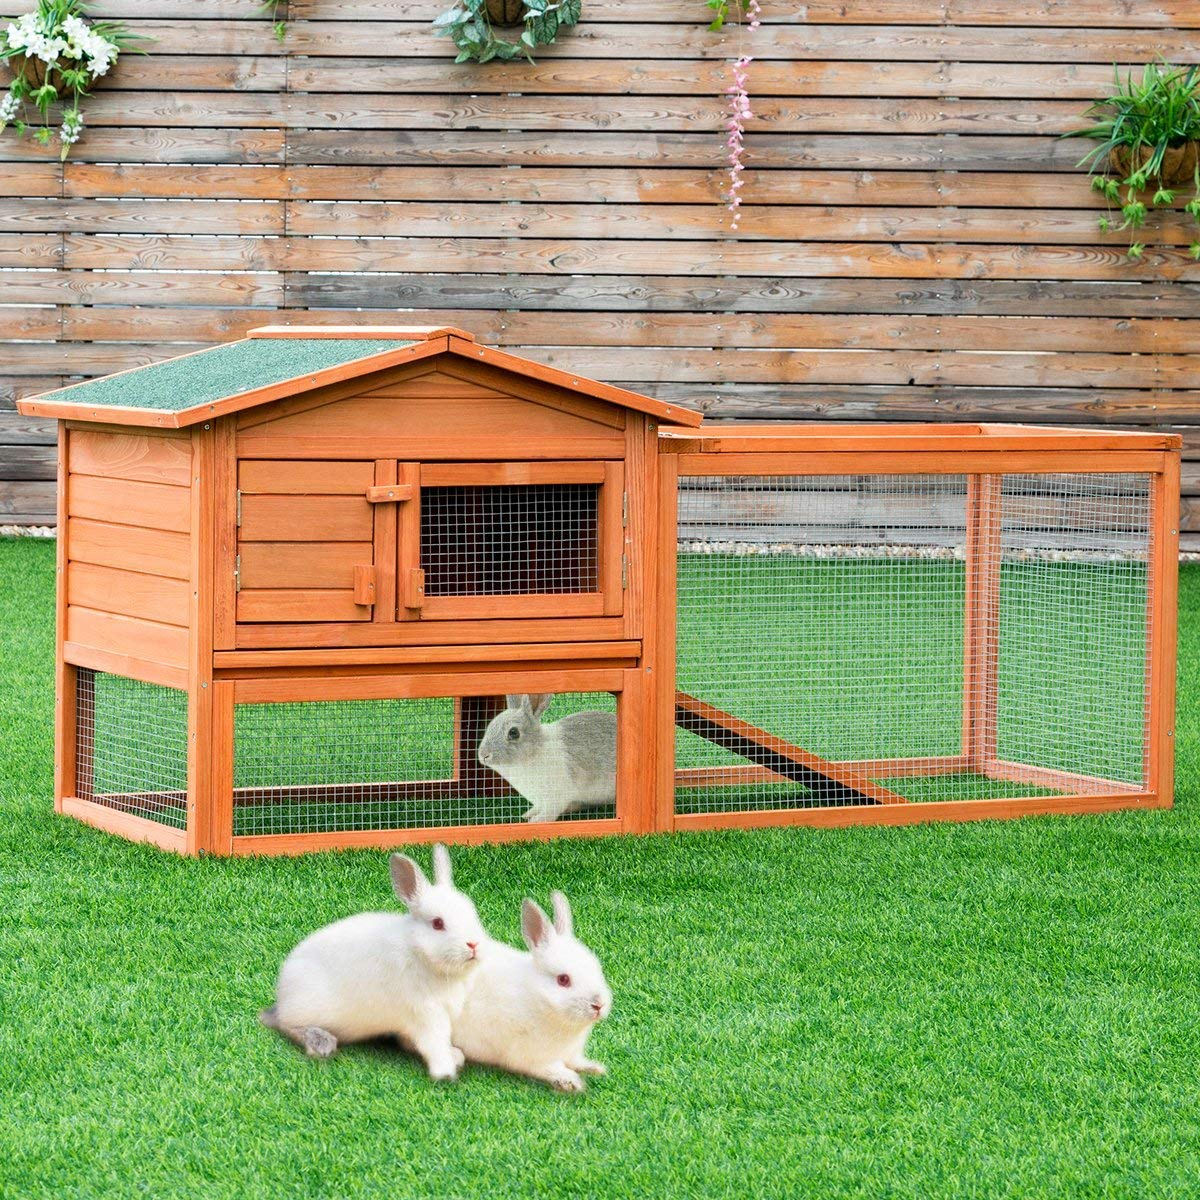 Tangkula Chicken Coop Outdoor Wooden Chicken Coop Garden Backyard Farm Bunny Hen House Rabbit Hutch Small Animal Cage Pet Supplies for Chicken, Duck, Rabbit, etc (61.5'' x 20.5'' x 27''(L x W x H)) by Tangkula (Image #1)